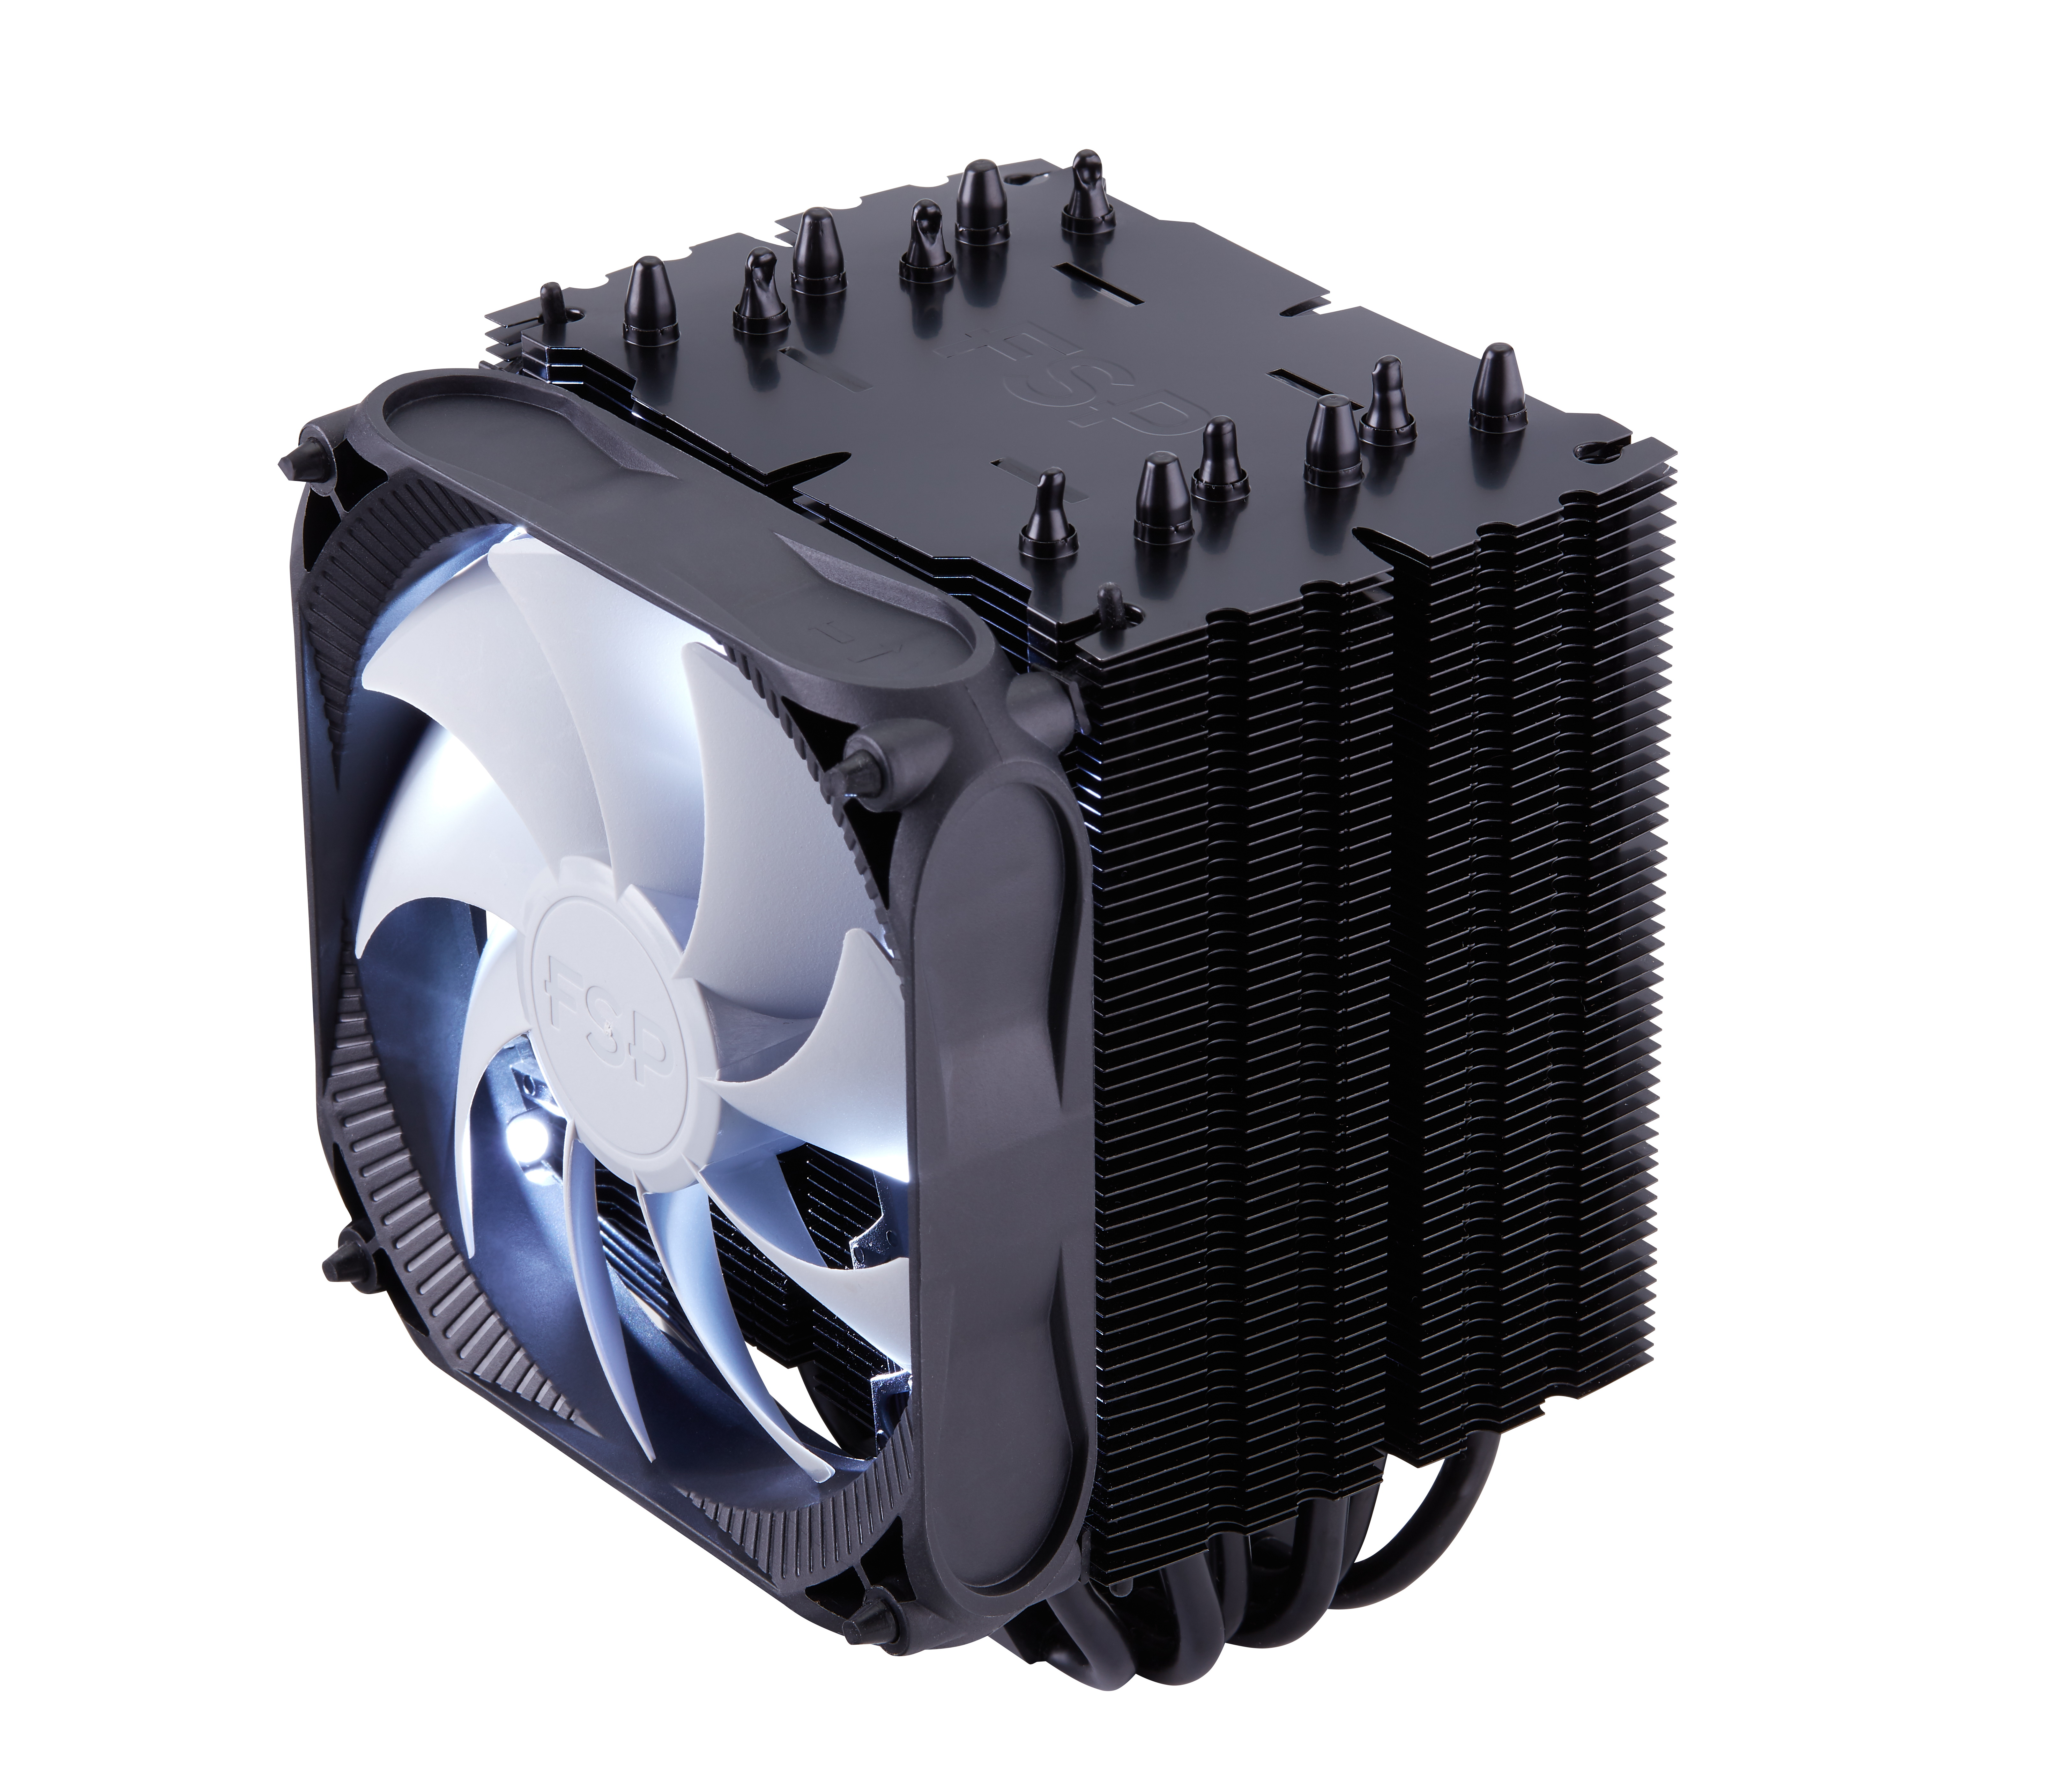 FSP/Fortron Chladič CPU Windale 6 Cooler AC602, 6 Heat-Pipe, 240W TDP, 120 mm PWM white LED